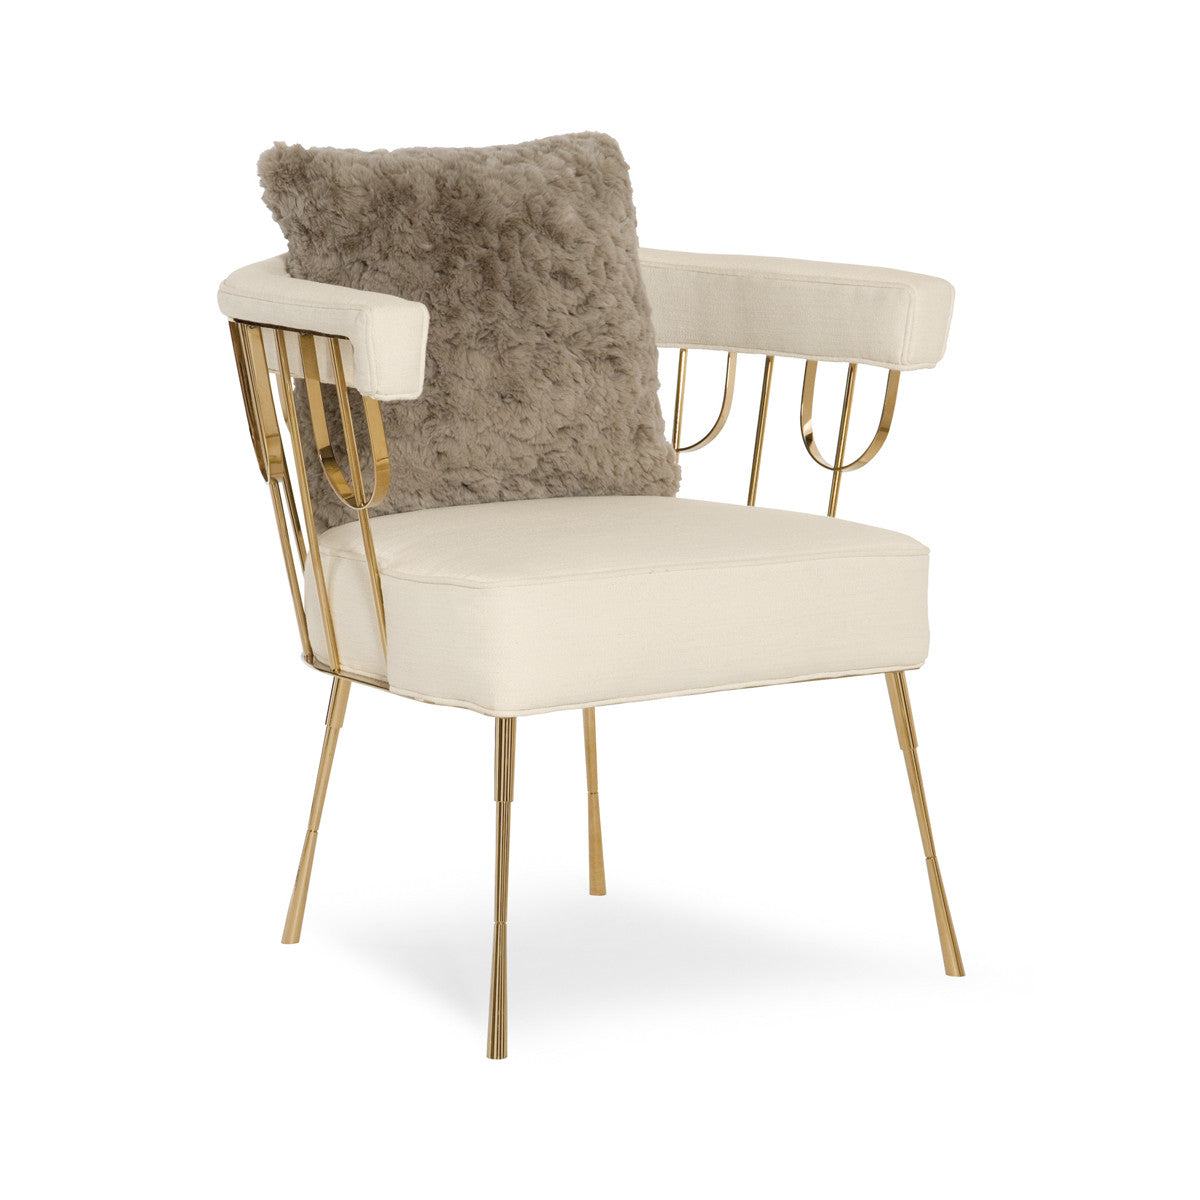 uniqwa occassional occasional capetown view chairs products by in chair town occ and cape perspective available white black